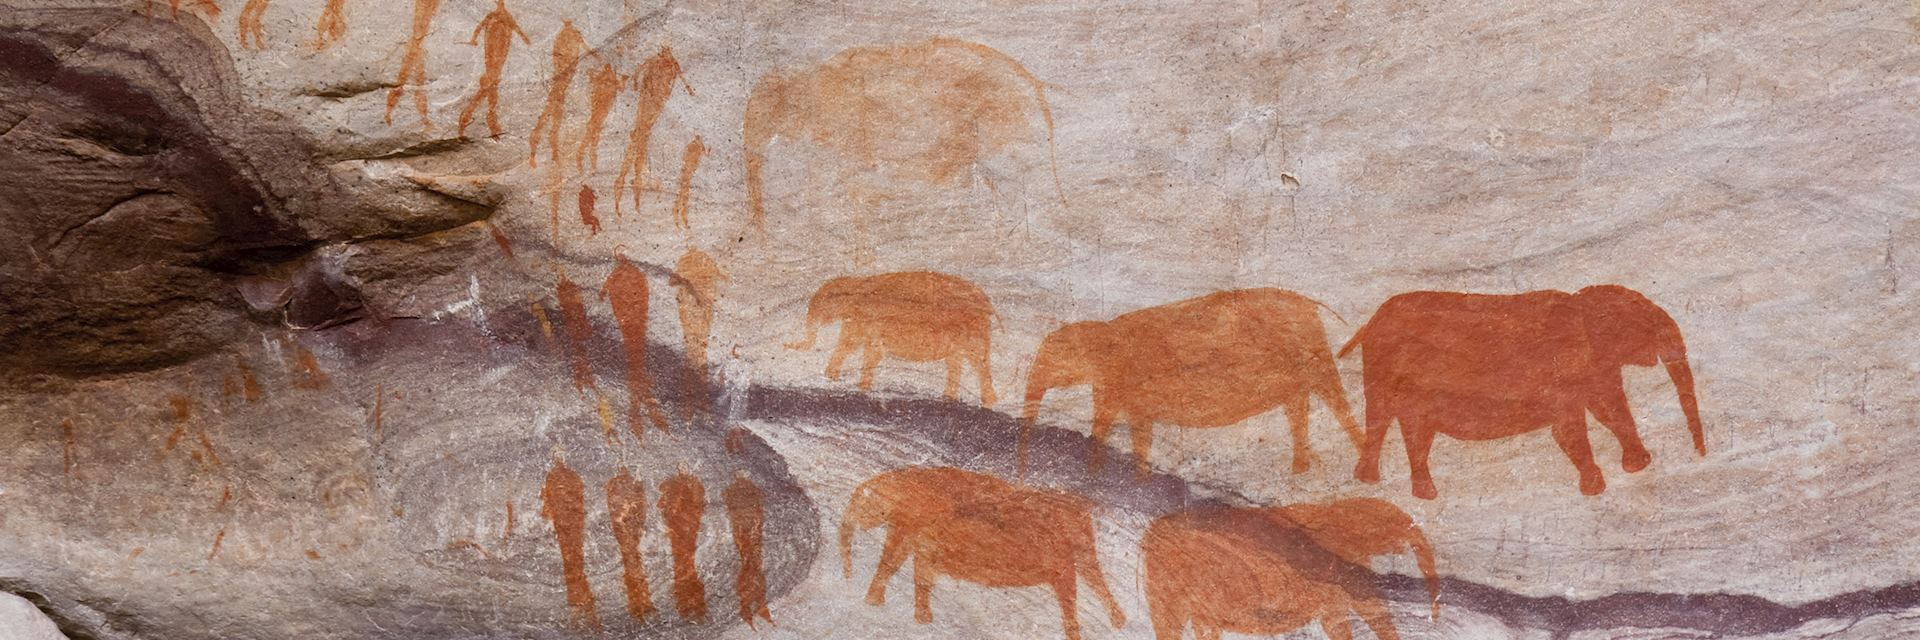 Bushman cave paintings, Cederberg Mountains